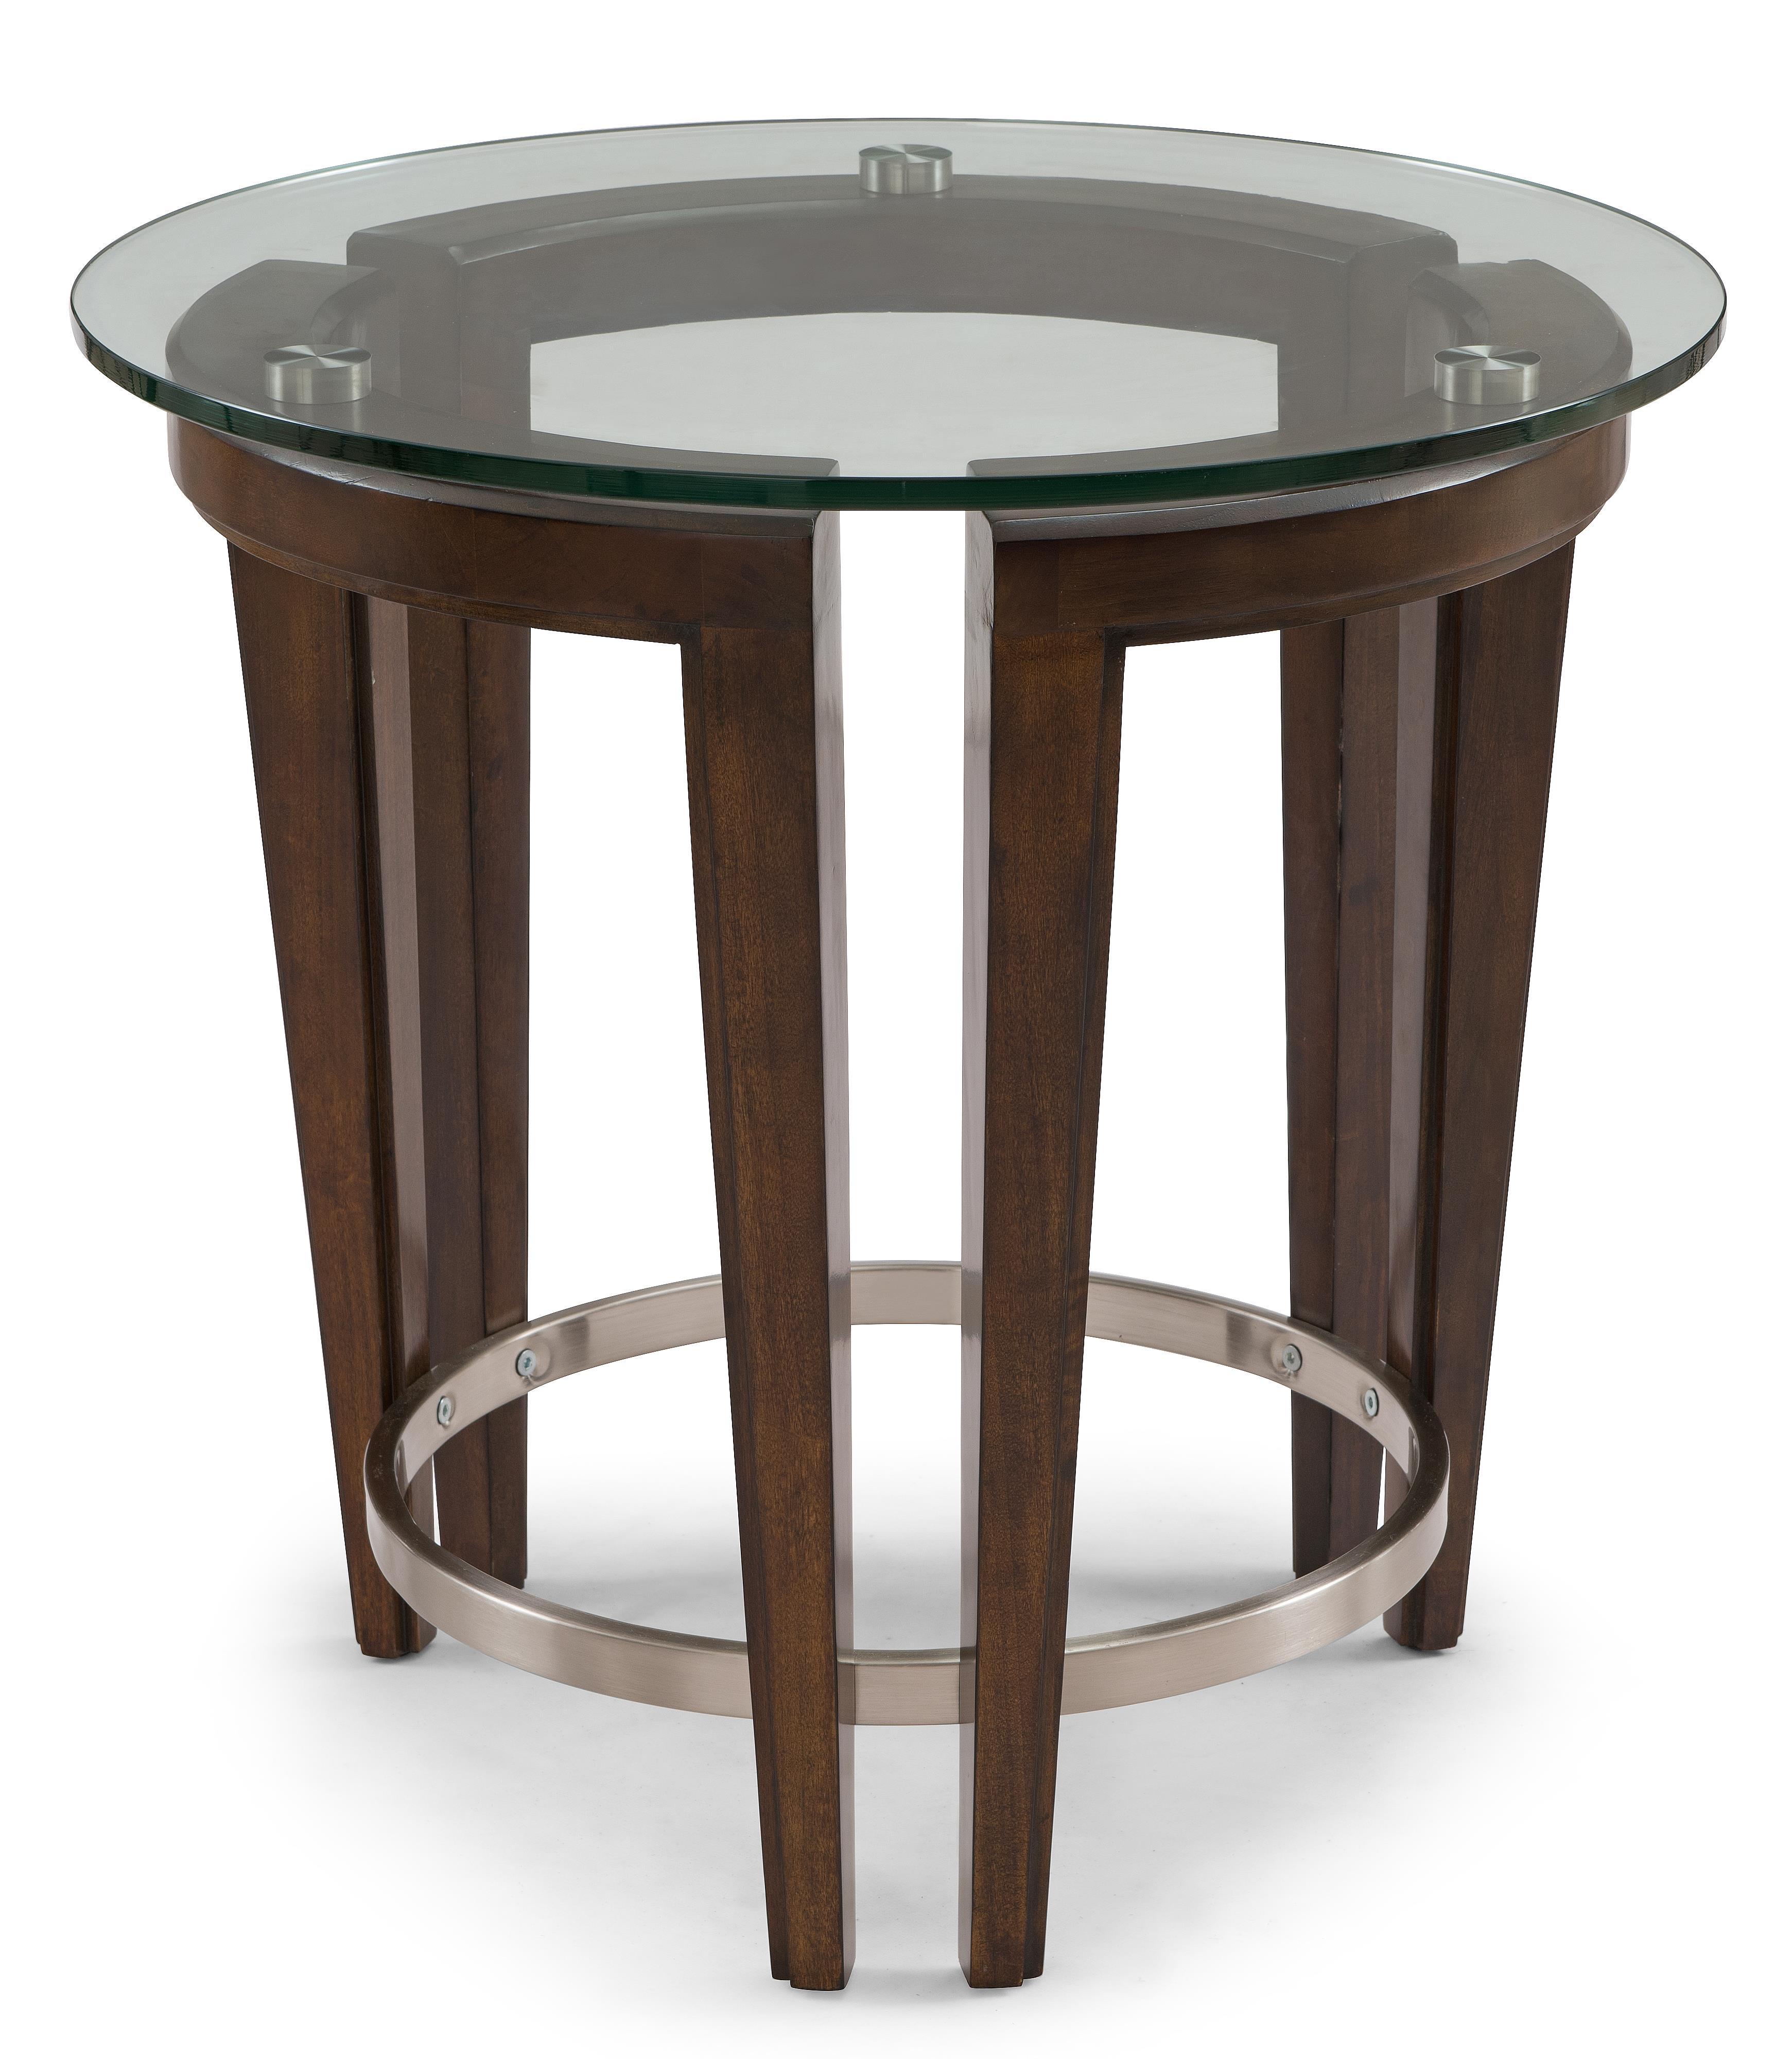 Contemporary Wood and Glass Round End Table